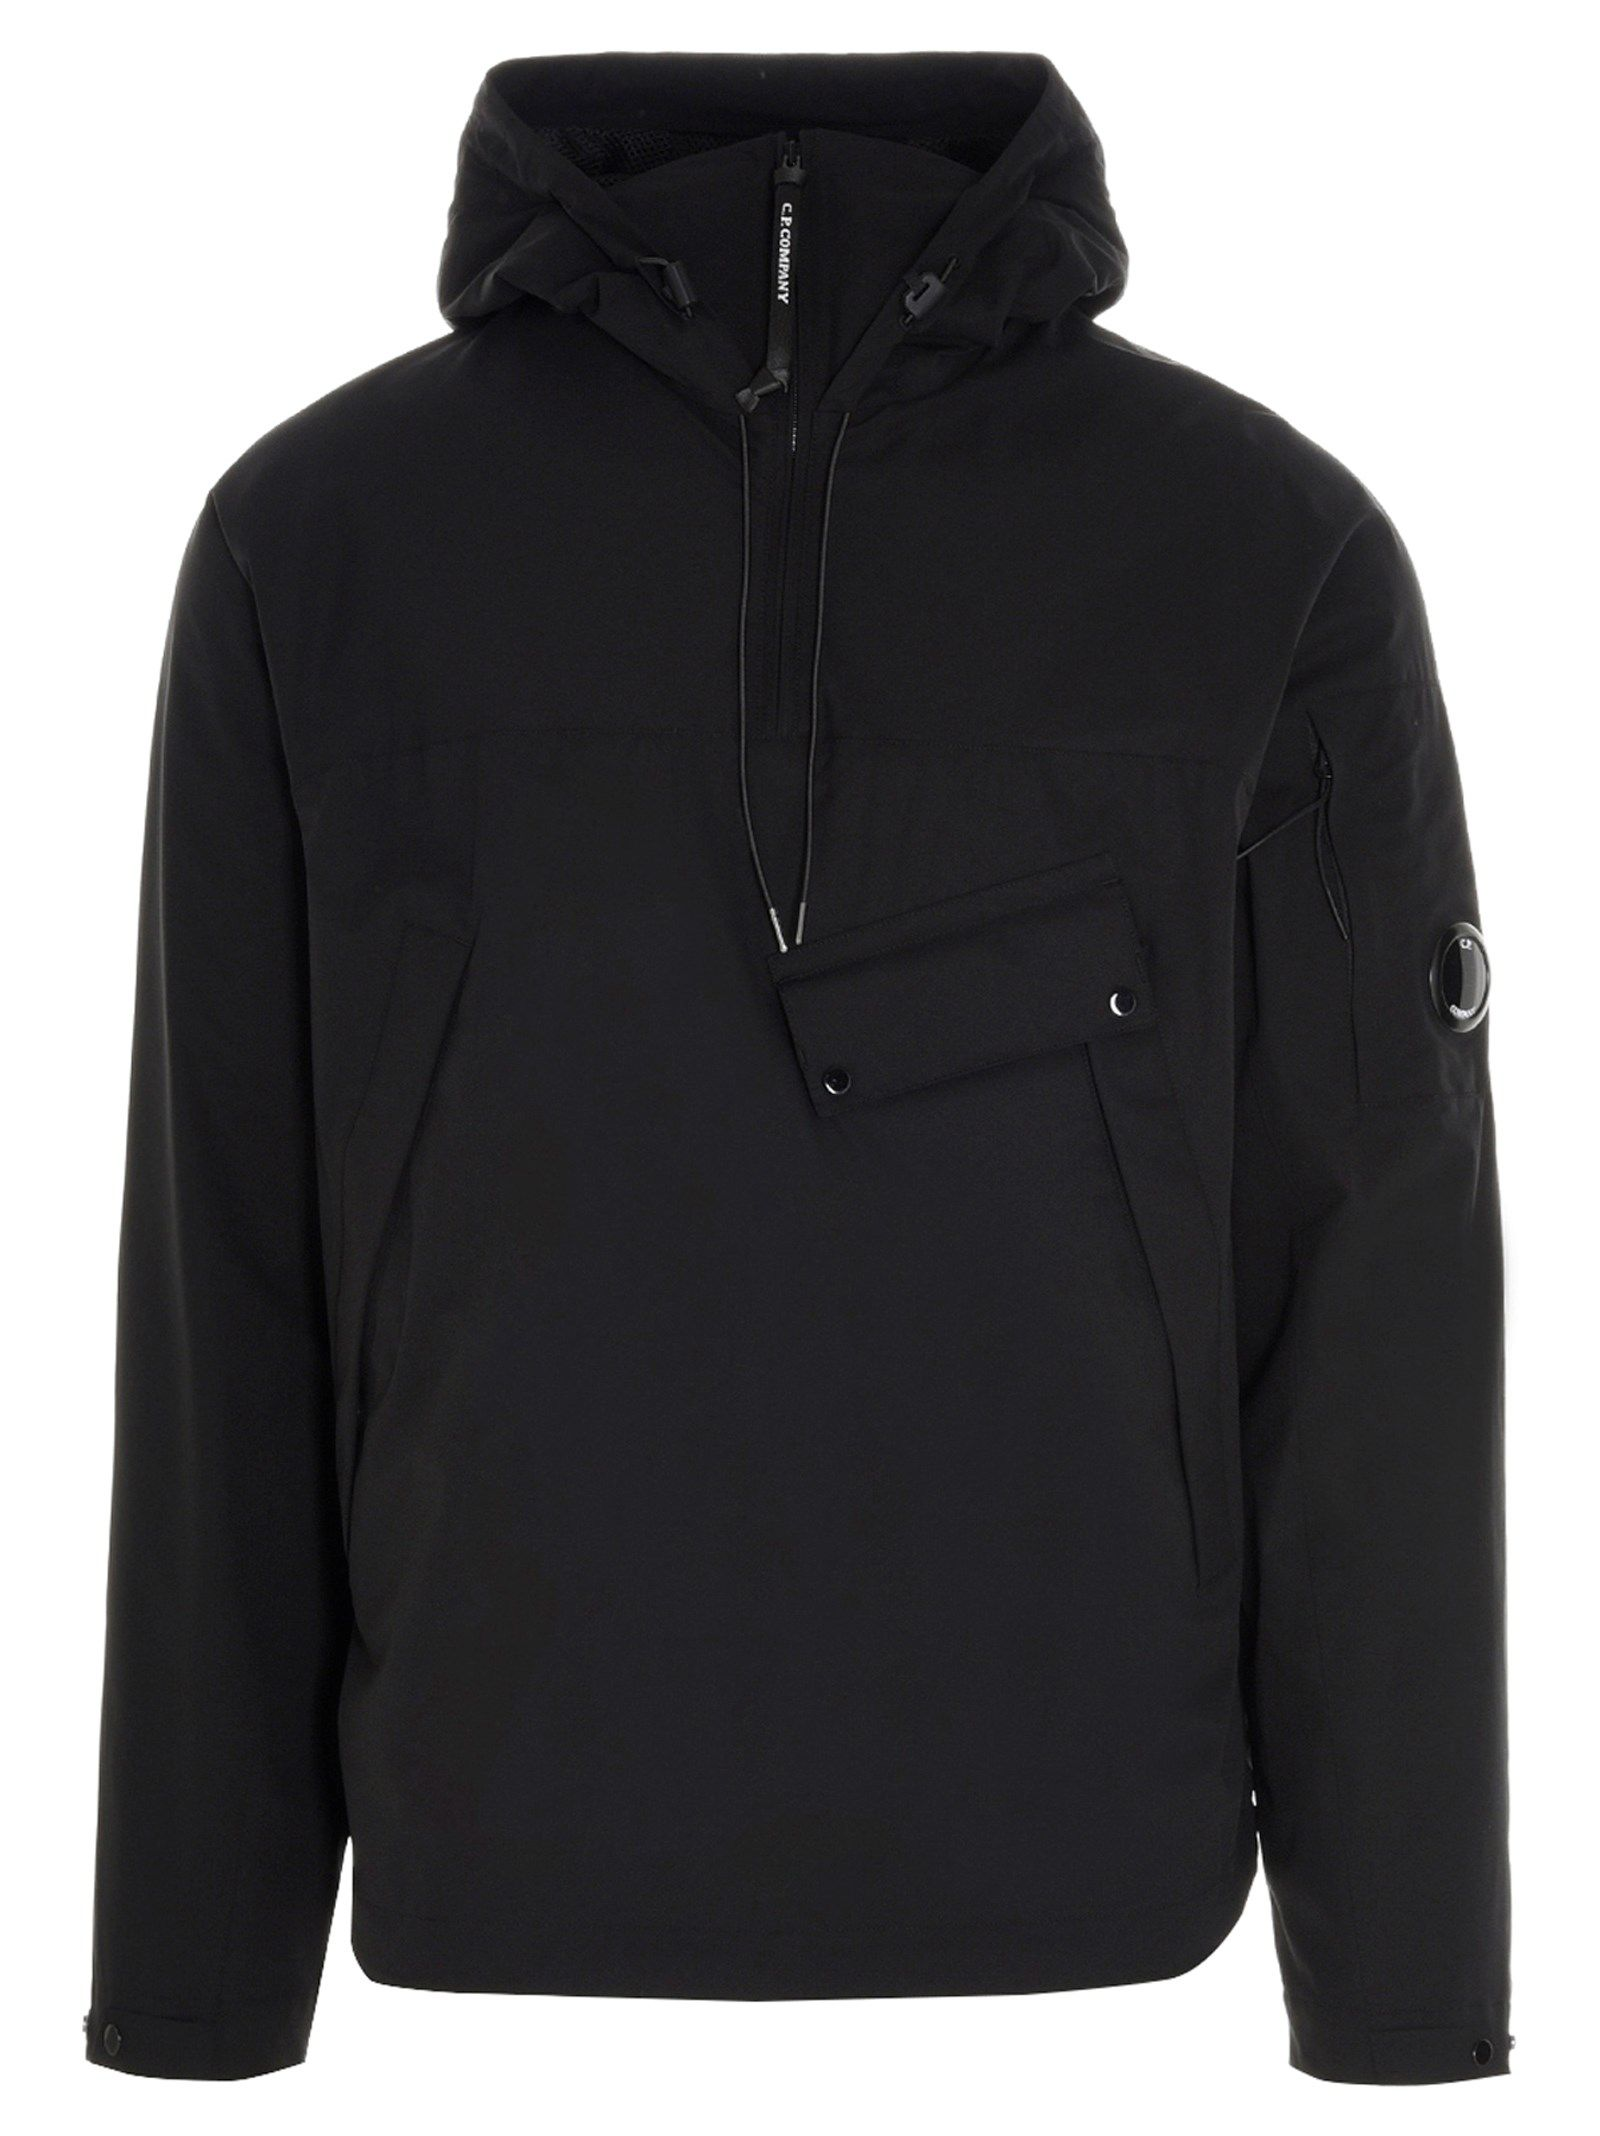 C.p. Company Jackets CP COMPANY MEN'S 10CMOW016A004117A999 BLACK OTHER MATERIALS OUTERWEAR JACKET